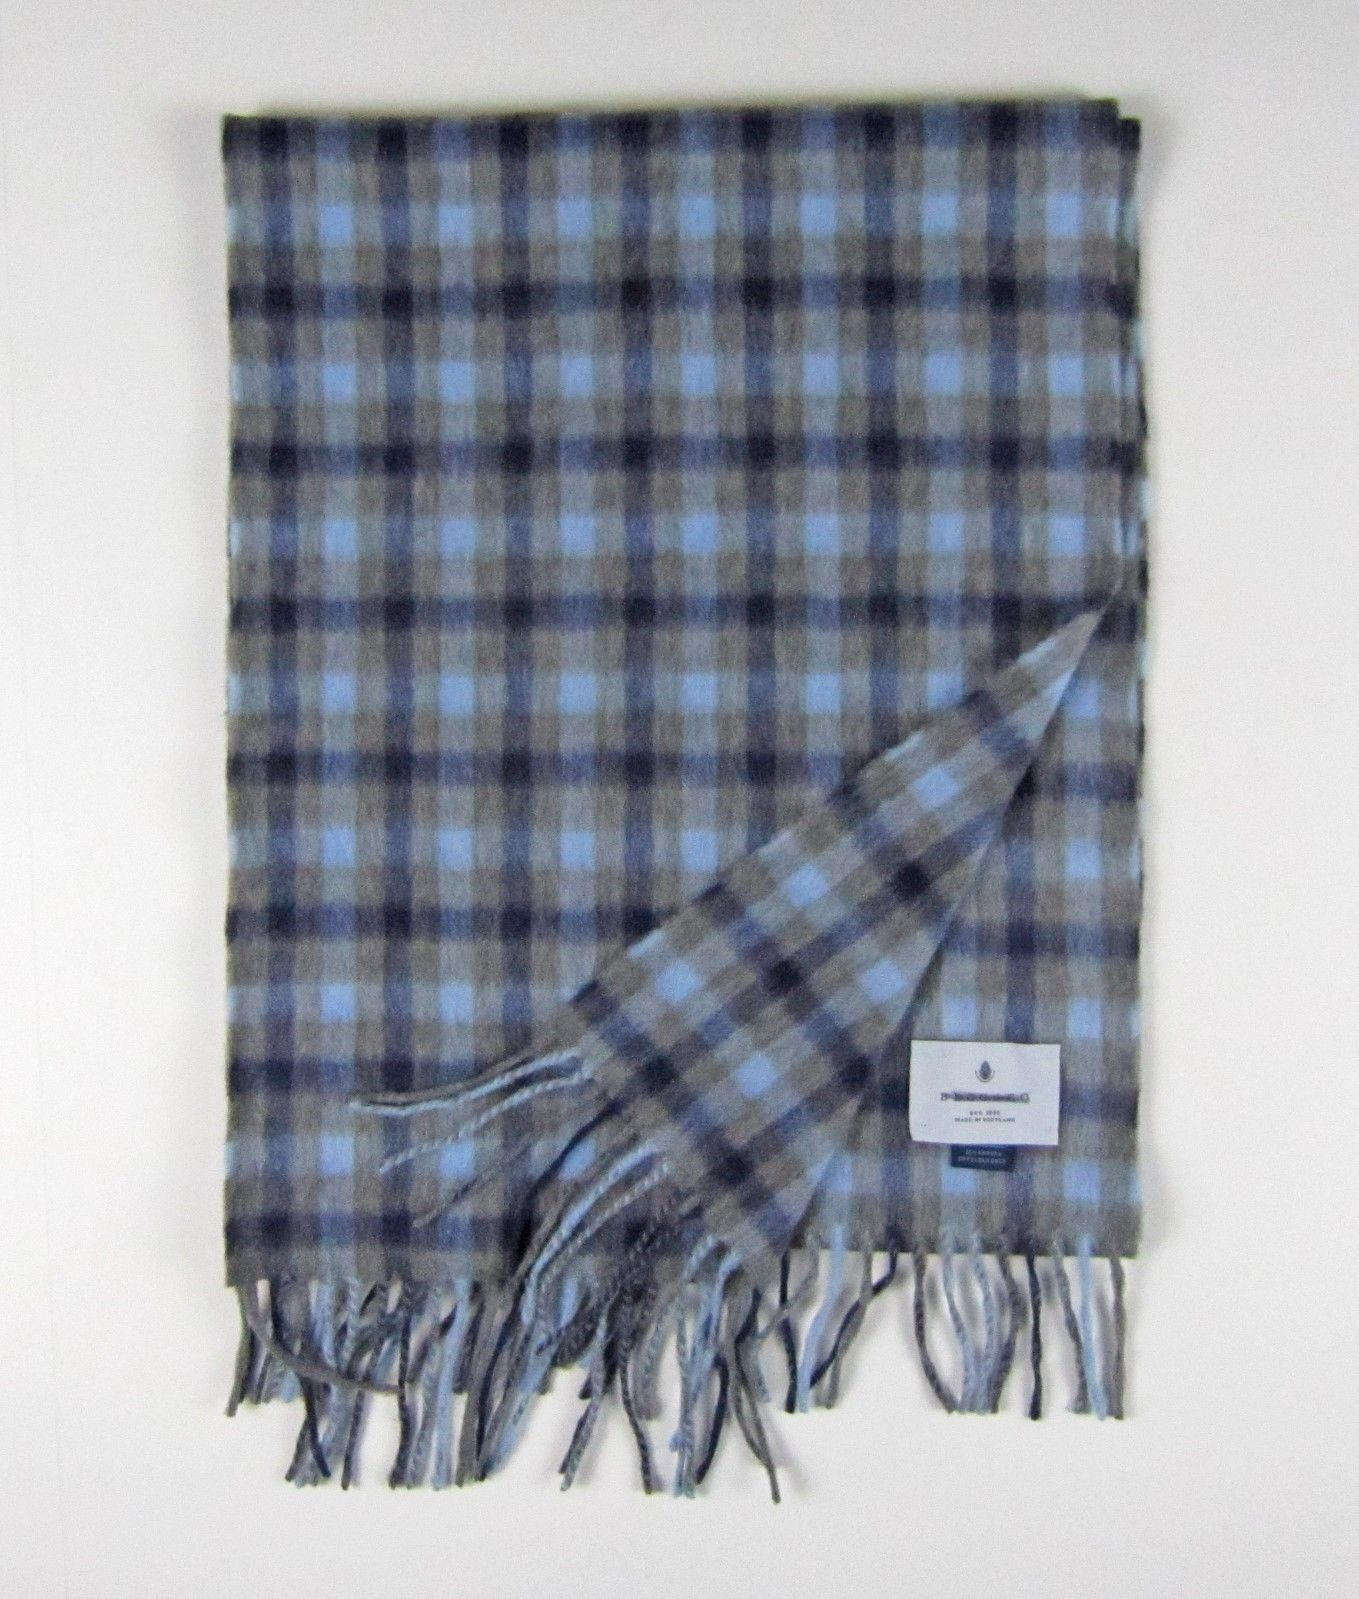 NWOT J Crew Begg & Co. wool scarf Blue Brown Made in Scotland 09605